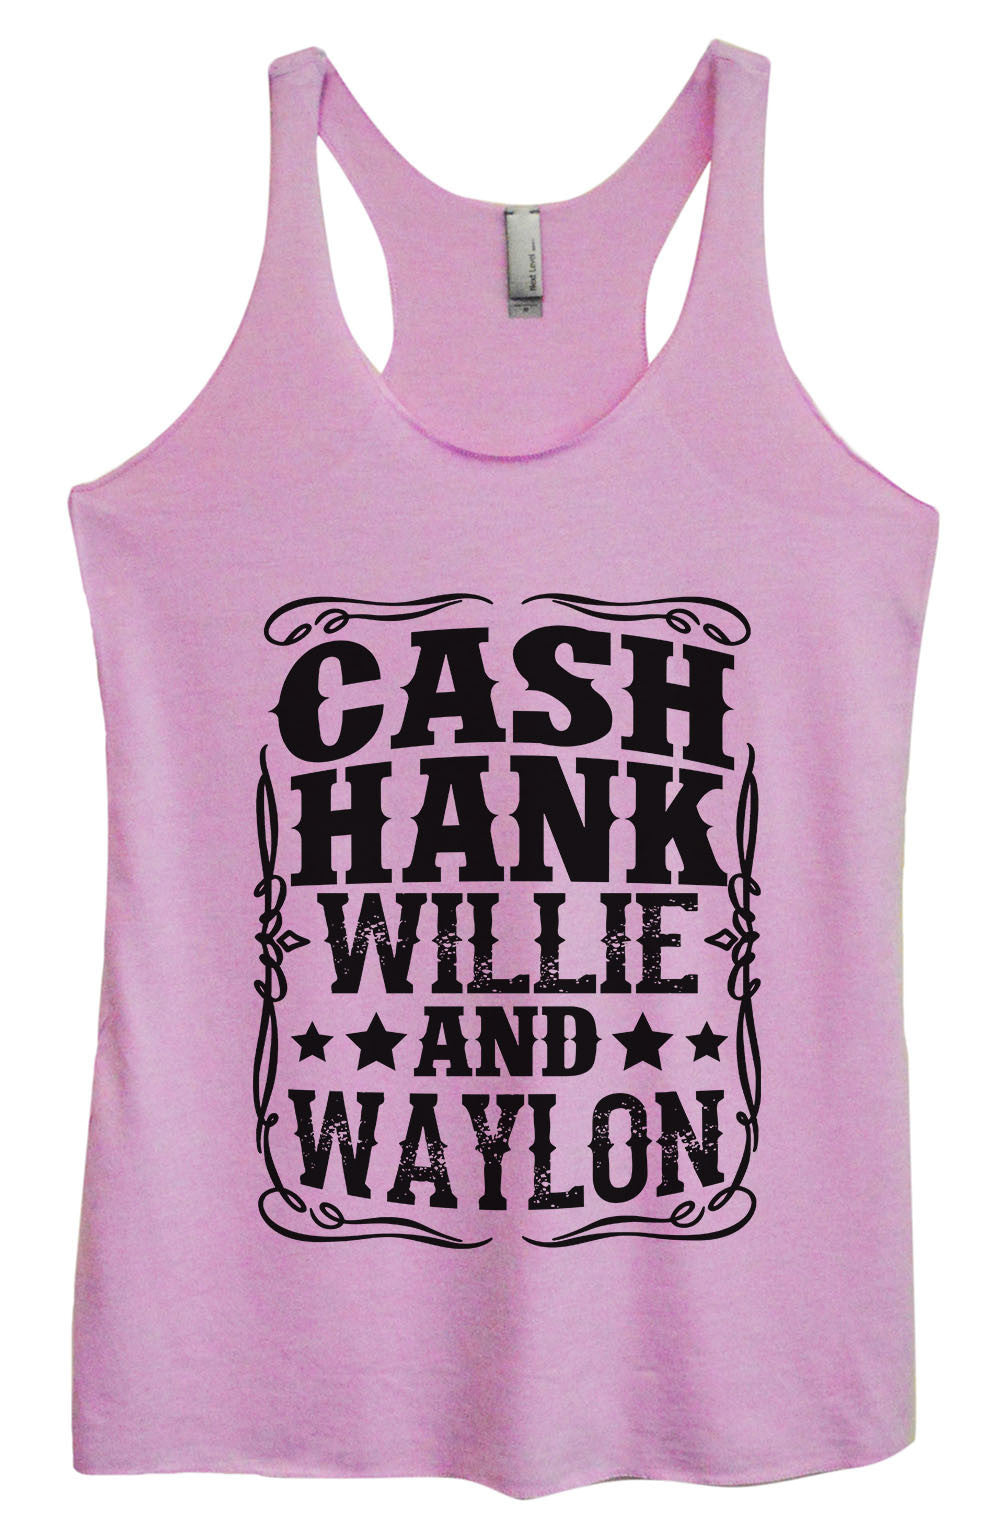 Womens Fashion Triblend Tank Top - Cash Hank Willie And Waylon - Tri-1571 - Funny Shirts Tank Tops Burnouts and Triblends  - 3